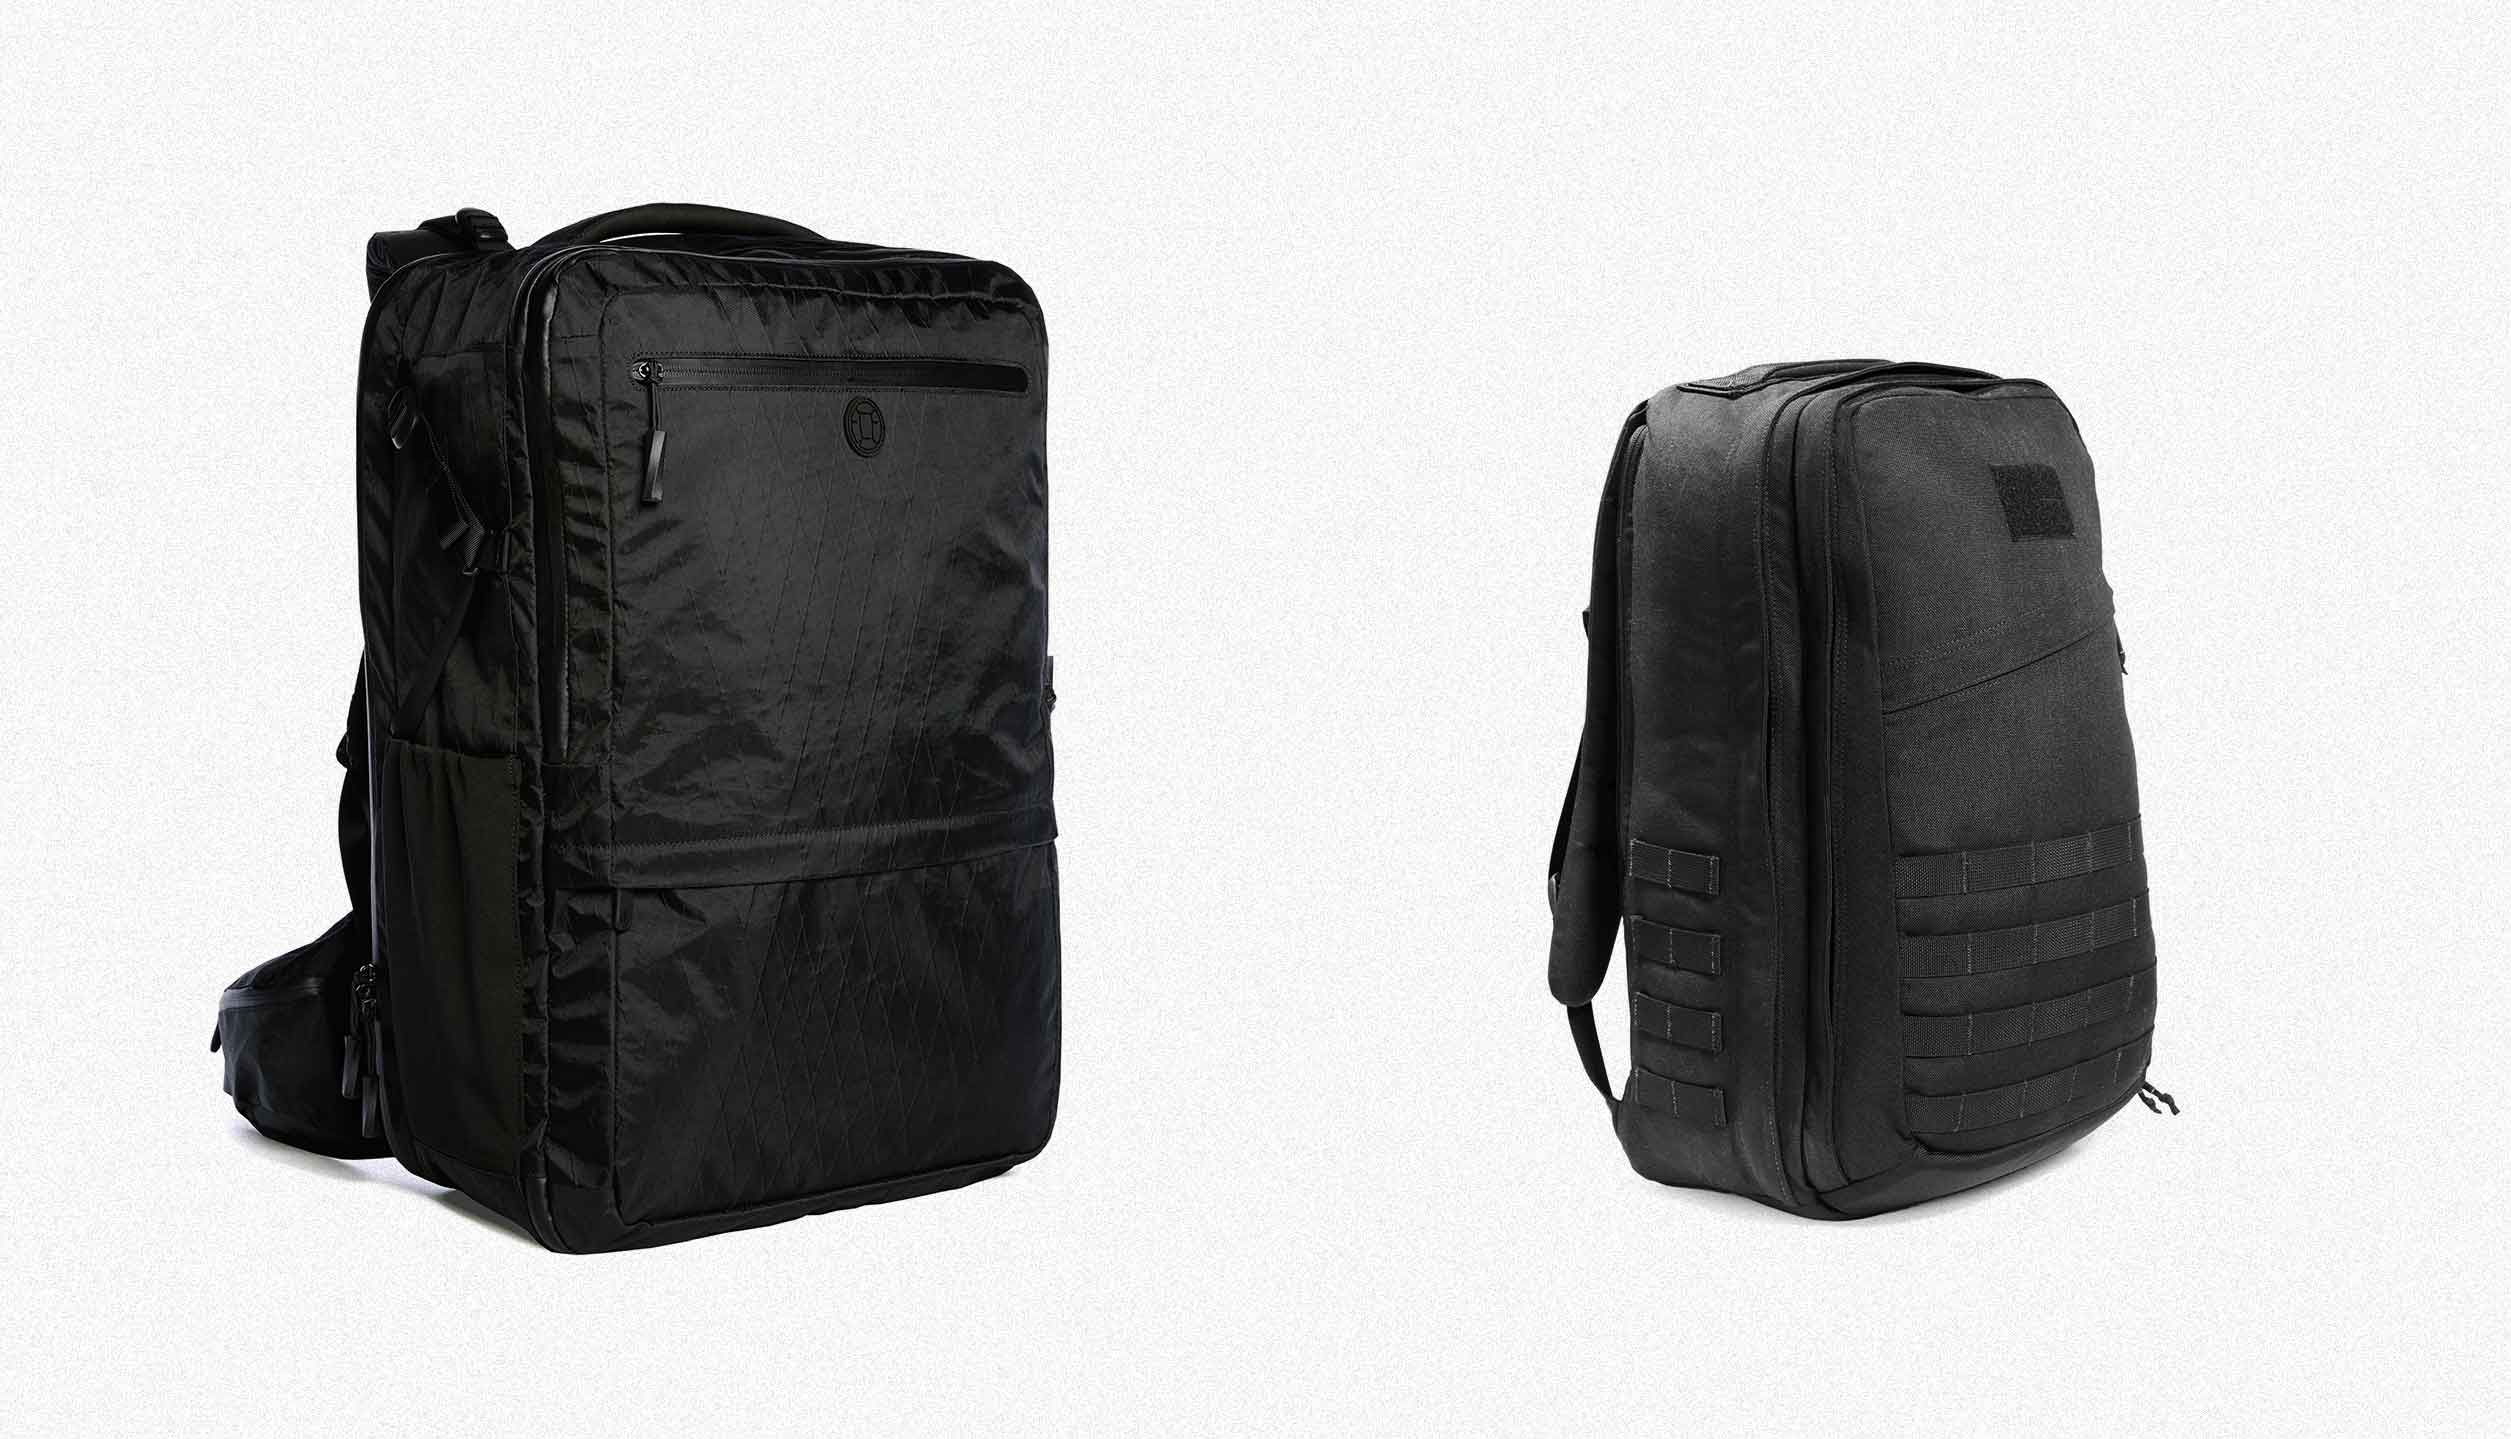 Goruck gr2 vs tortuga outbreaker we admire gorucks products company and mission while the gr2 is a nice backpack its an imperfect travel backpack gumiabroncs Images